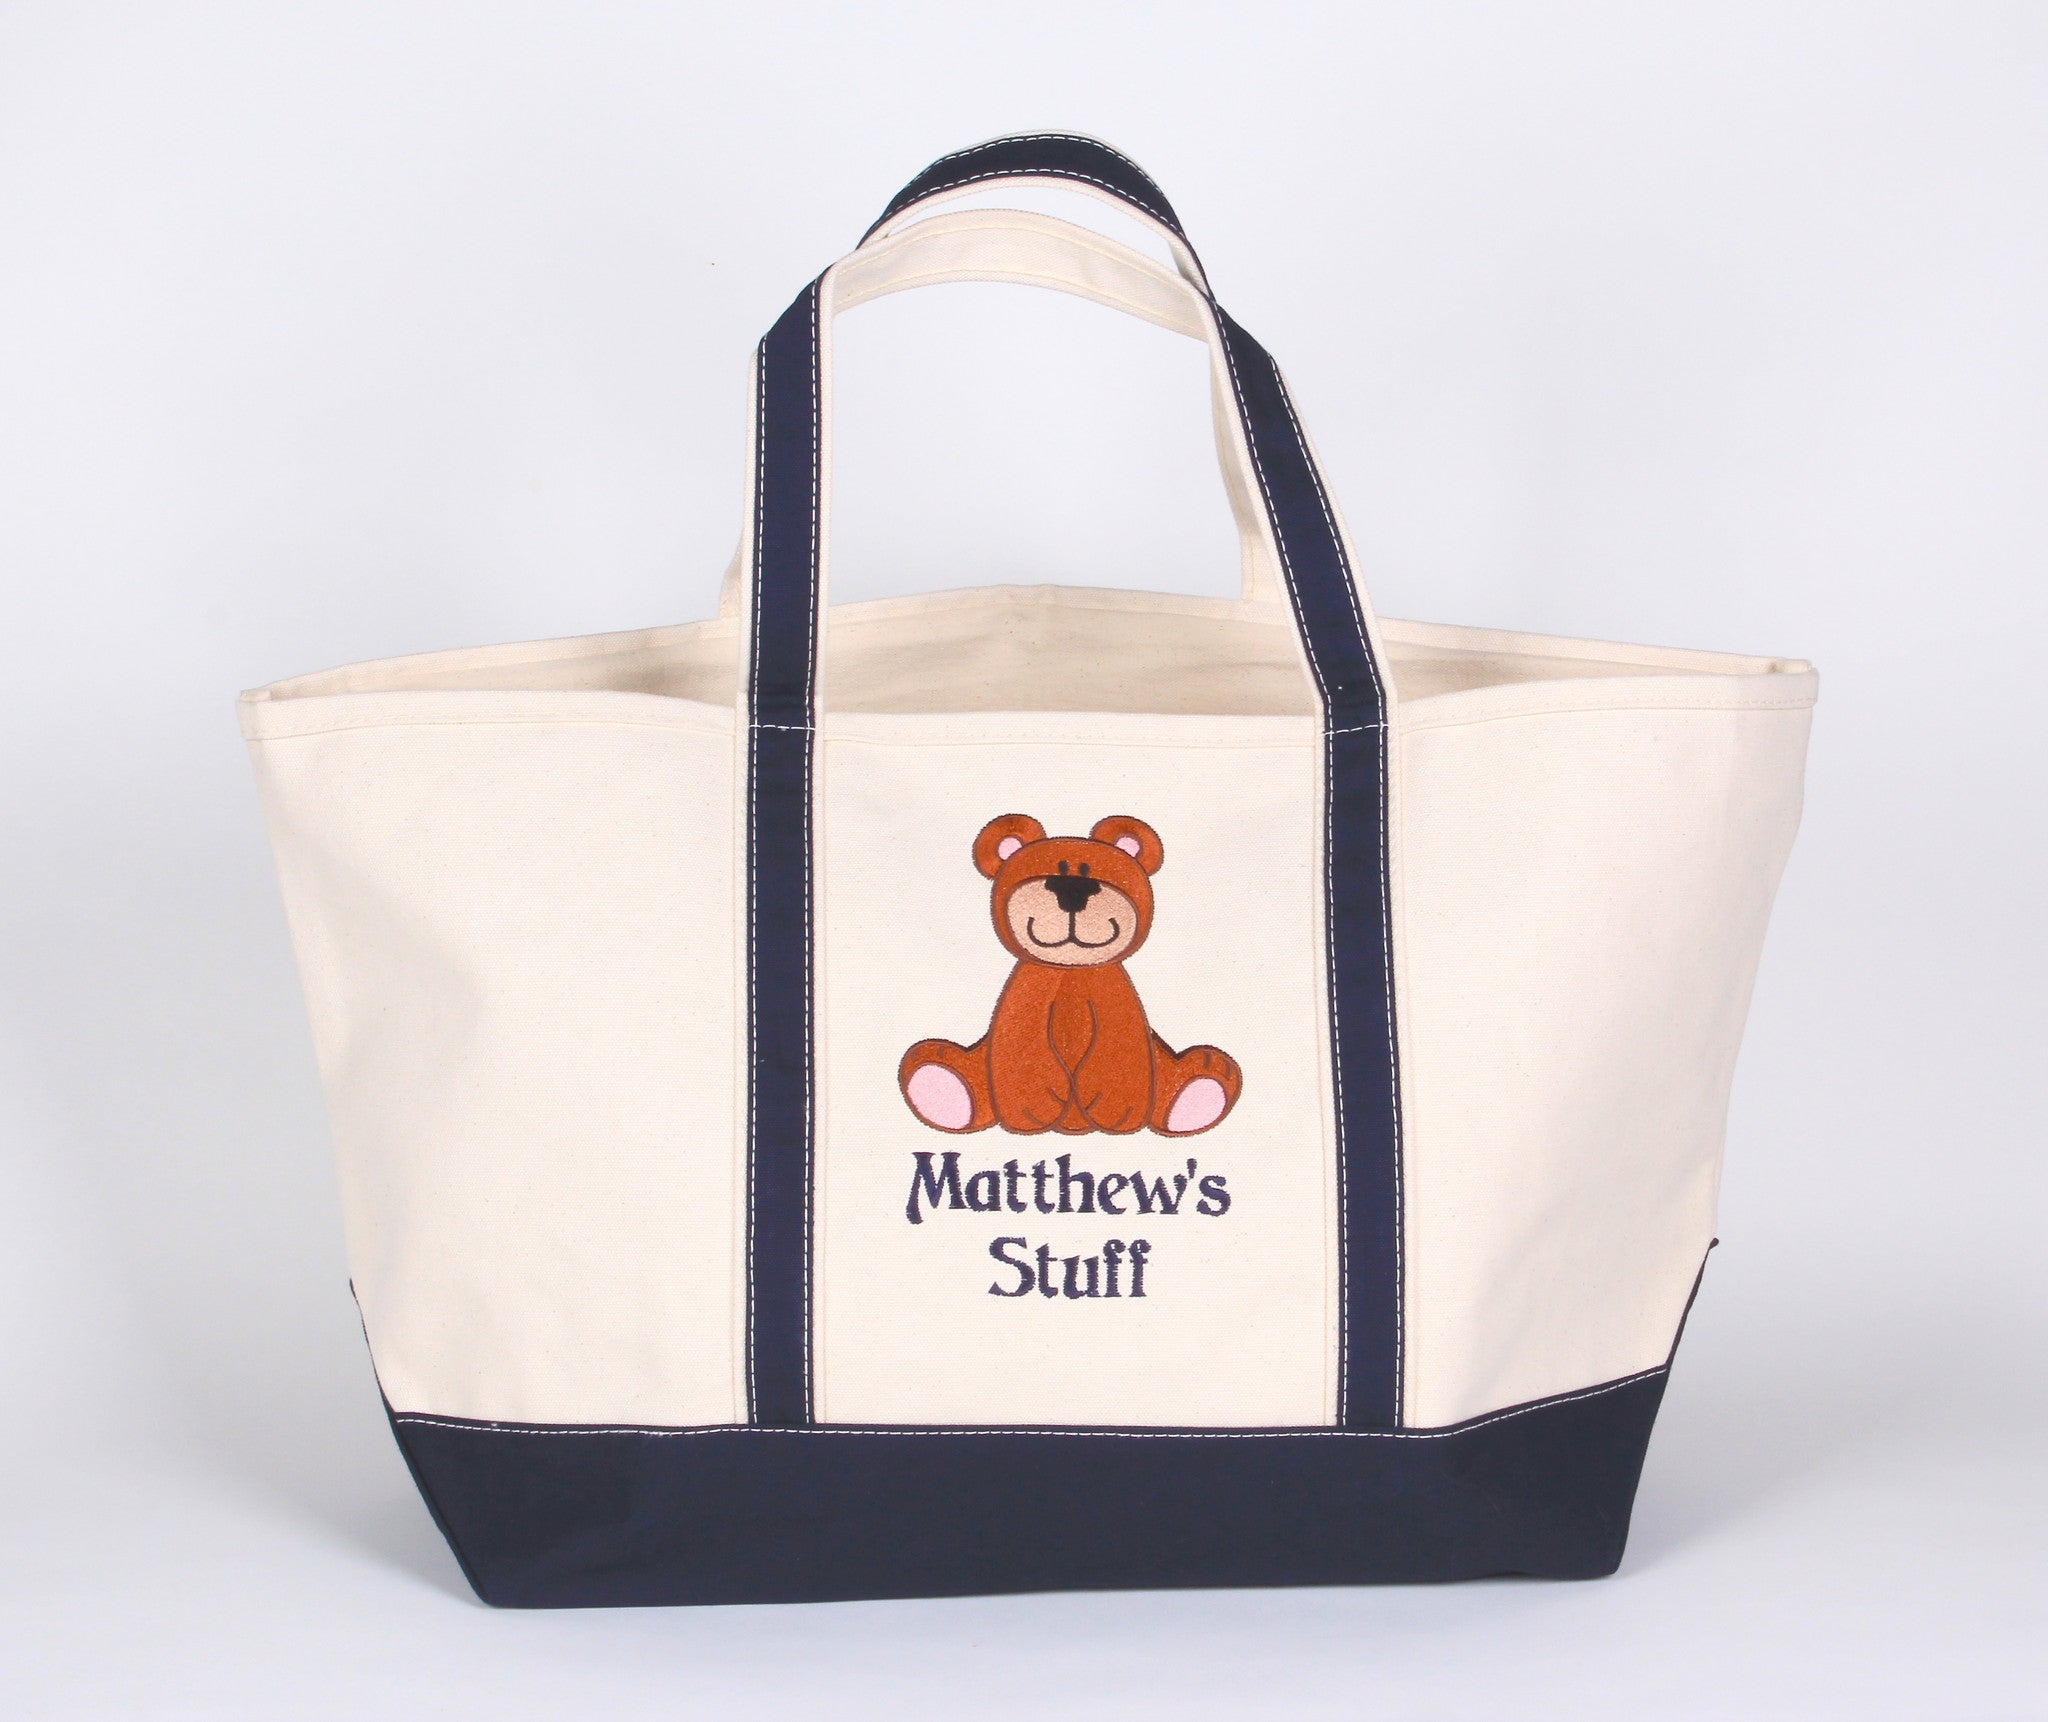 Tote Bag with a Bear